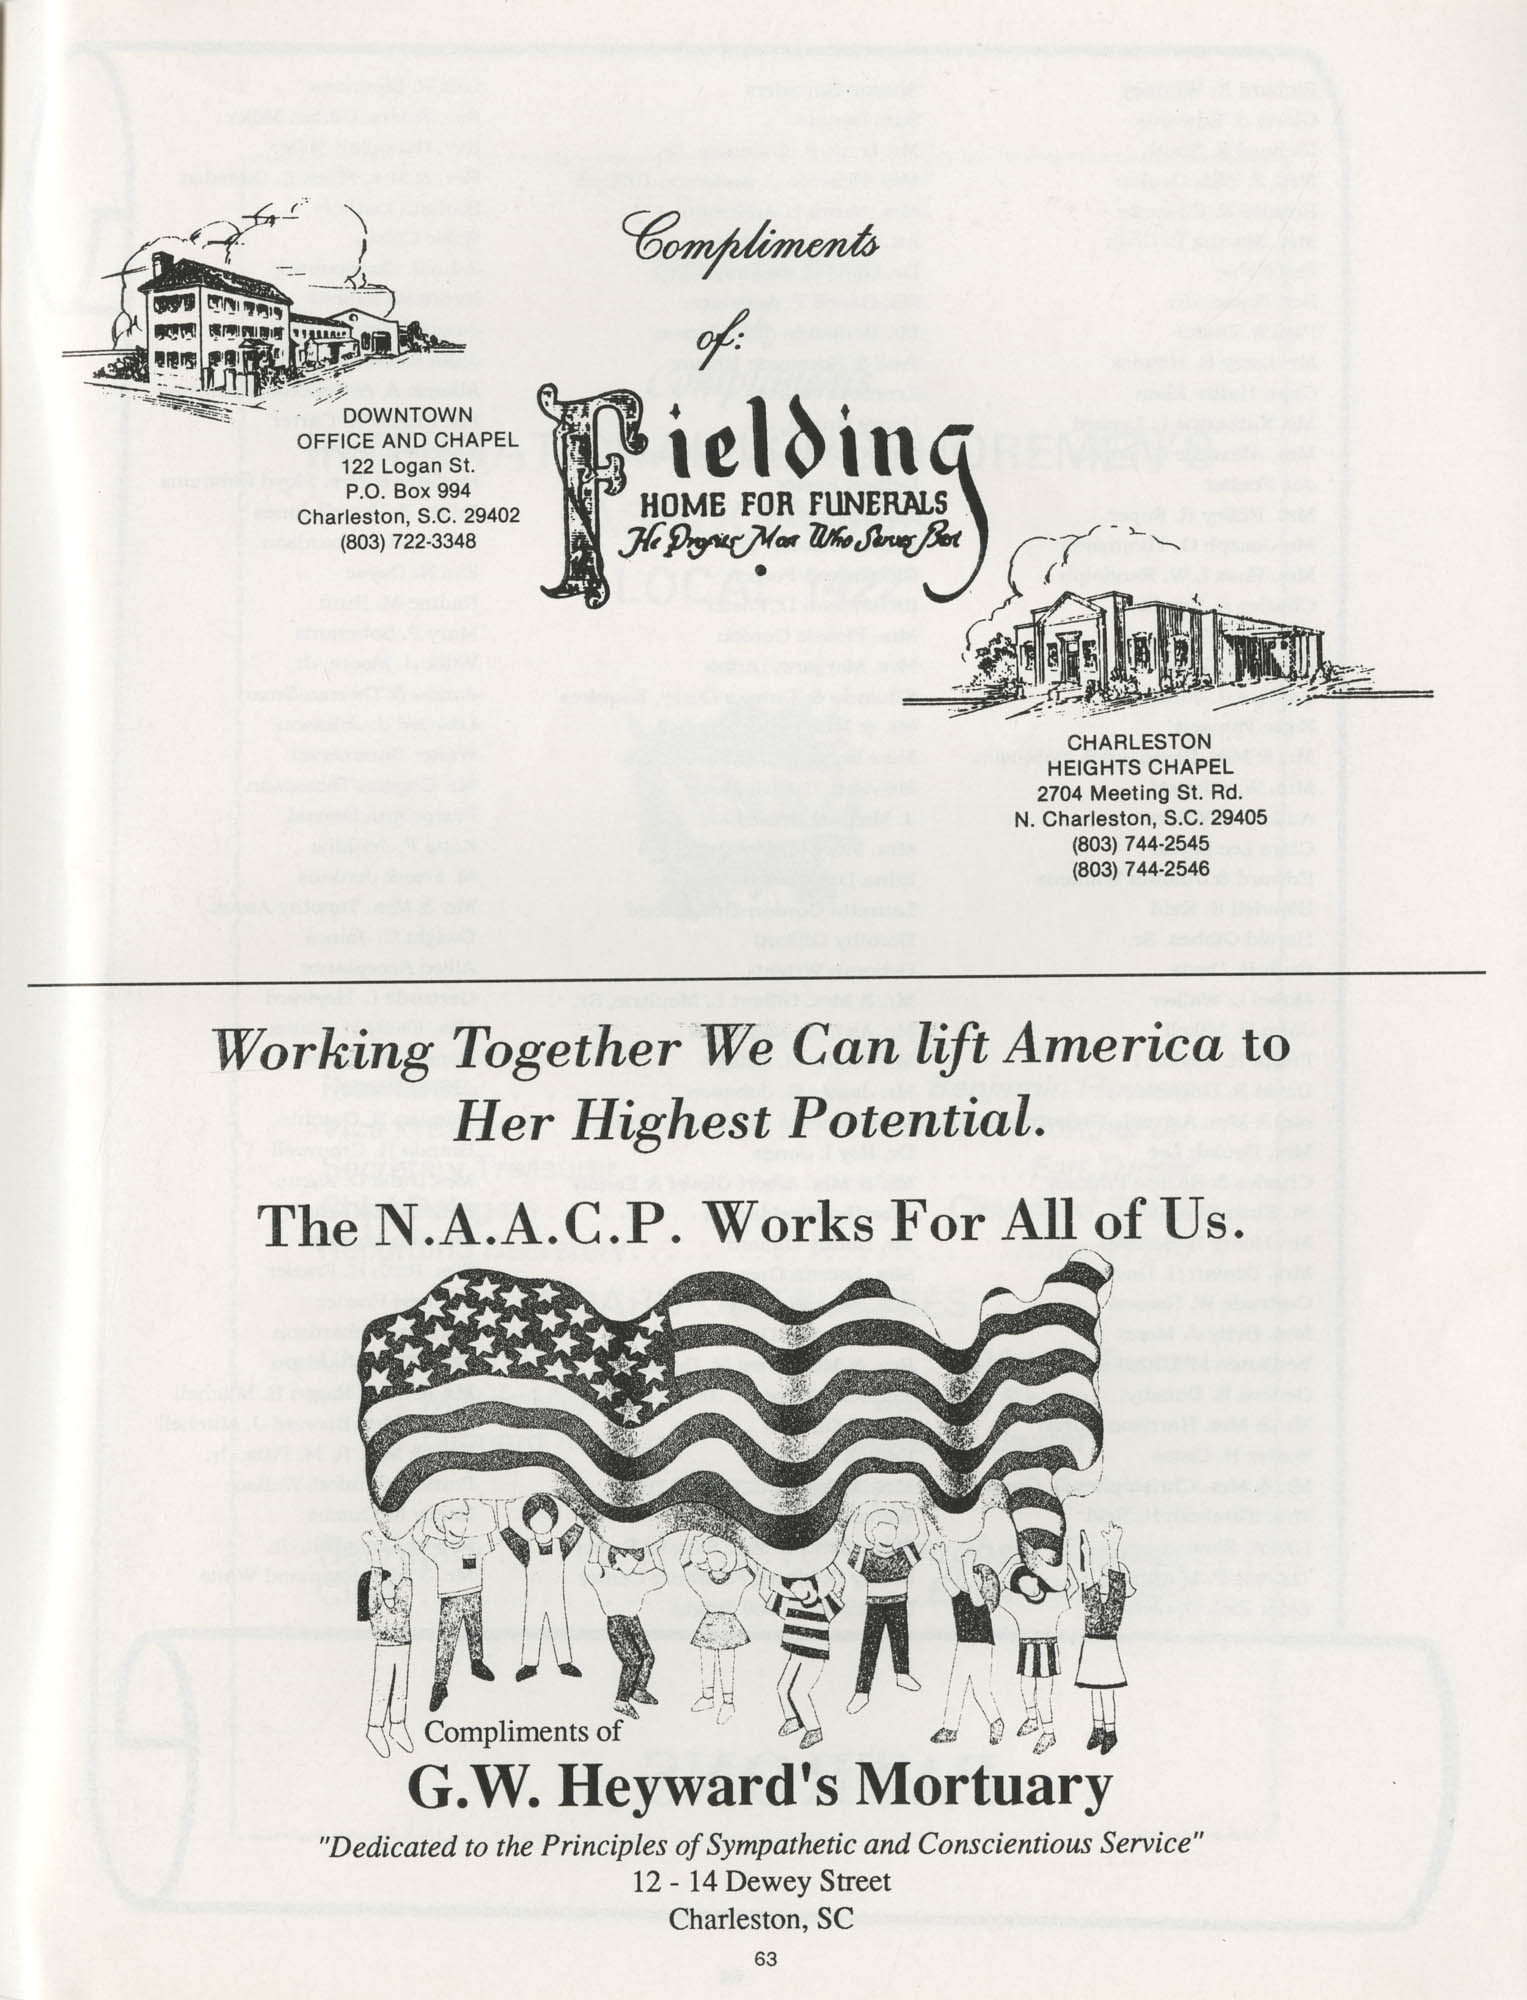 1990 NAACP Freedom Fund Magazine, Charleston Branch of the NAACP, 74th Anniversary, Page 63